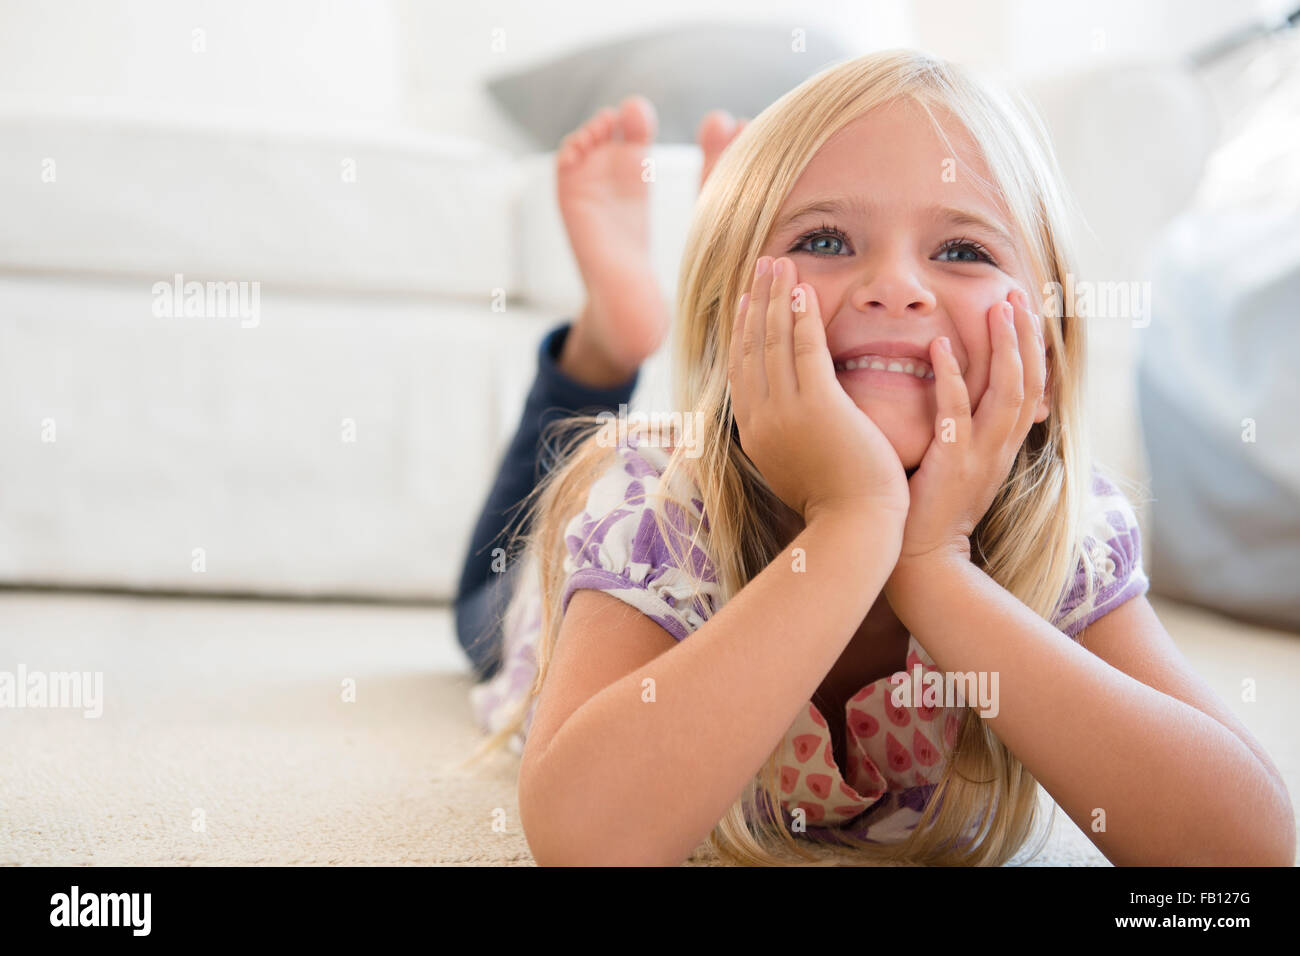 Girl (6-7) lying on floor - Stock Image